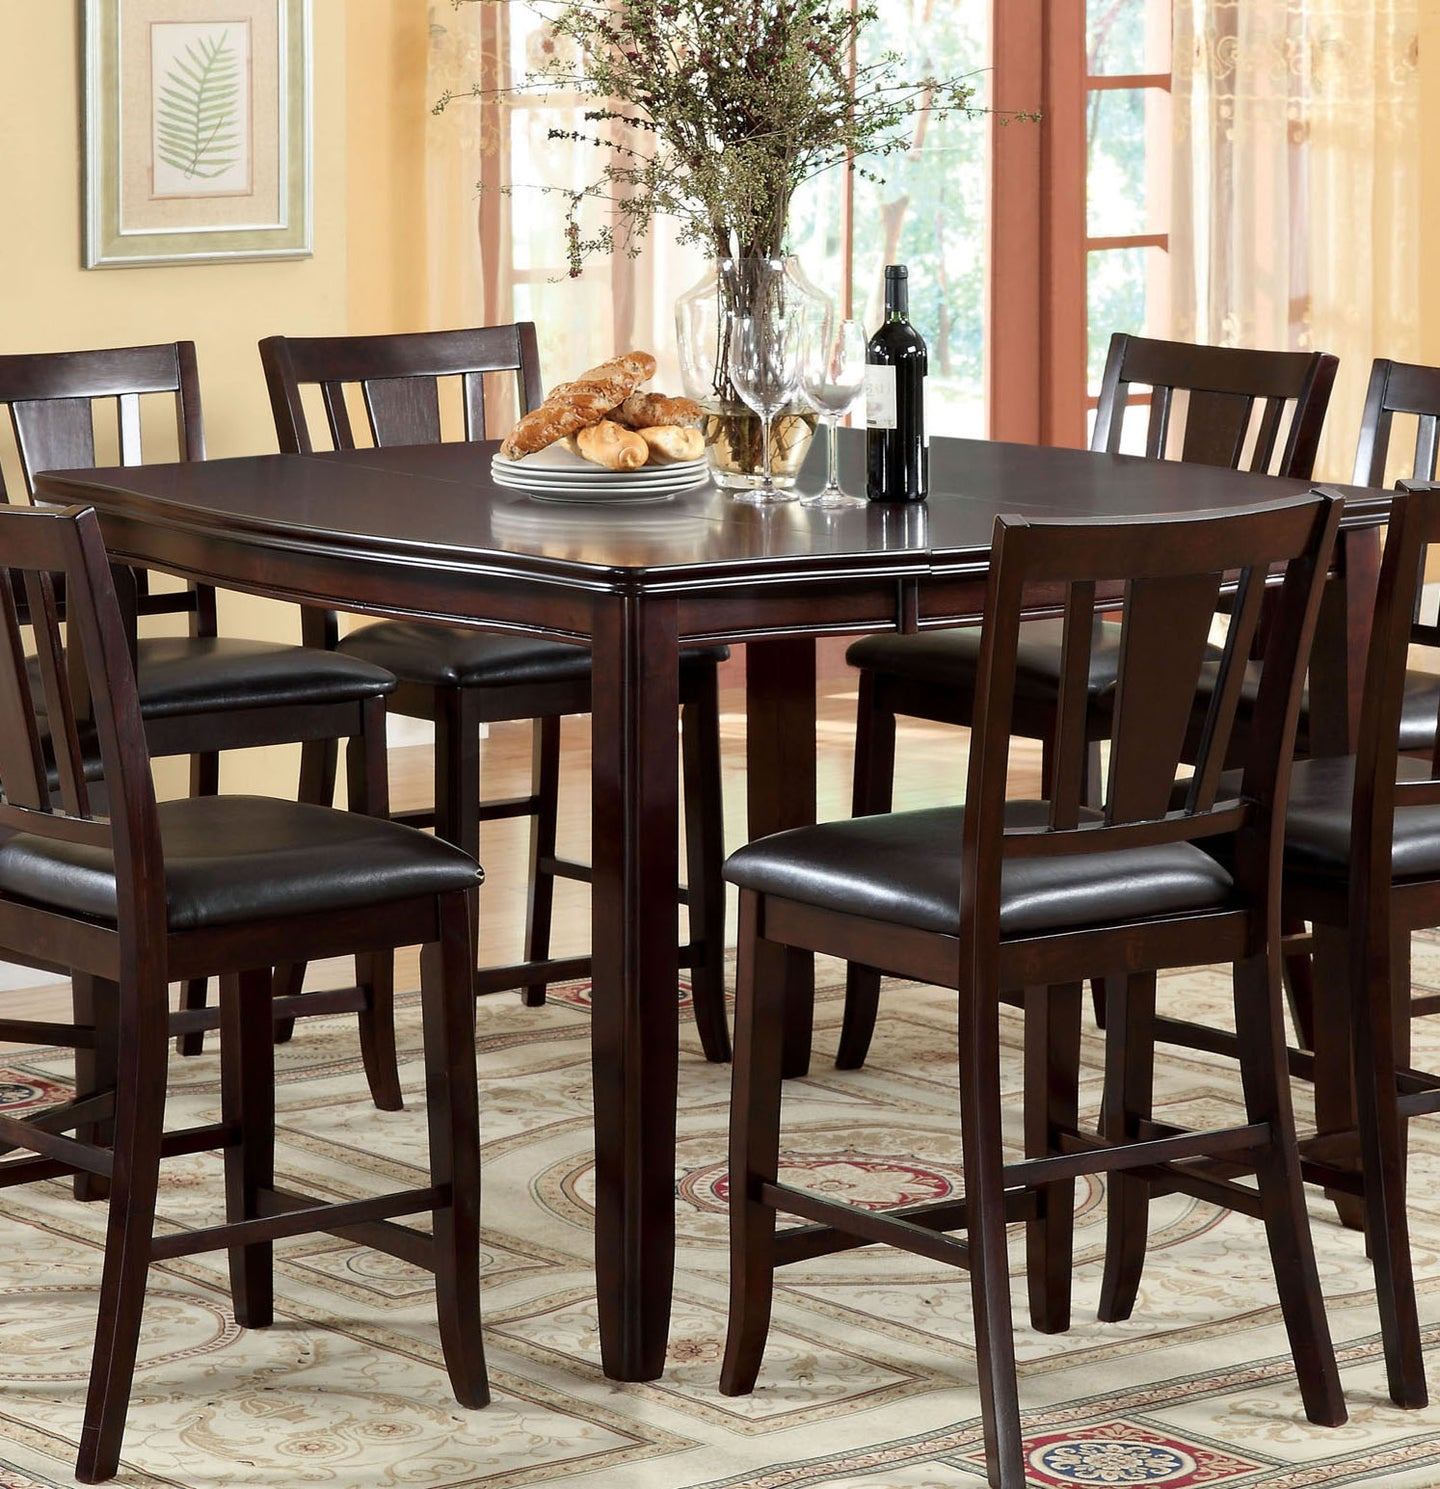 Furniture Of America Edgewood II Espresso Wood Finish Counter Height Dining Table